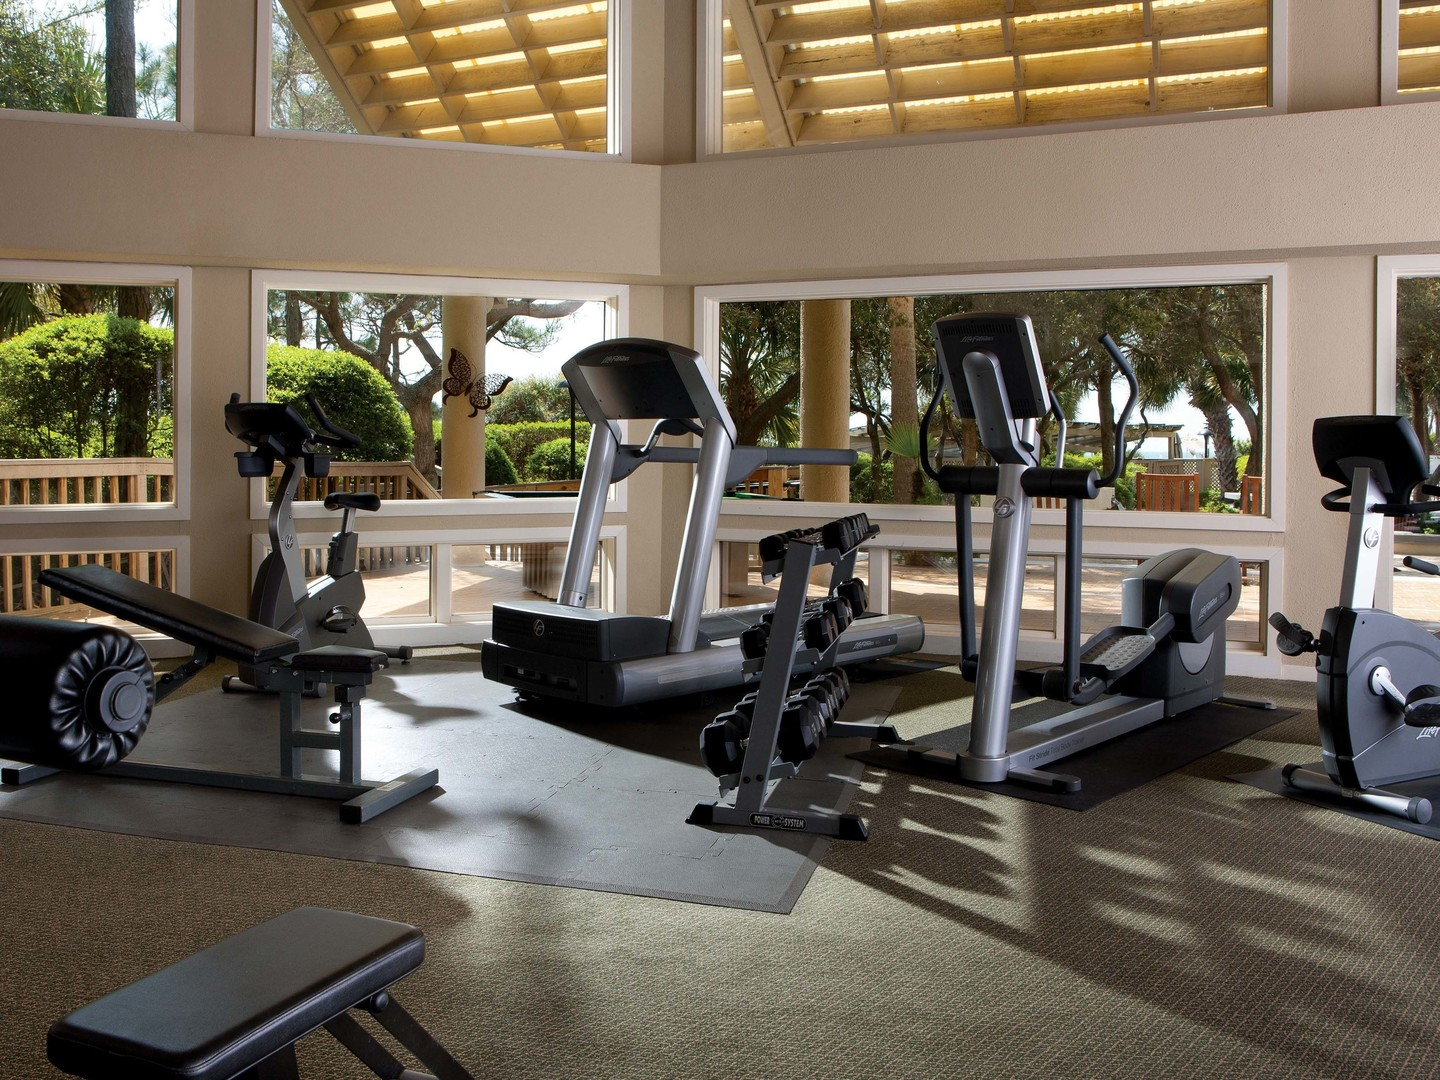 Marriott's Monarch Fitness Center. Marriott's Monarch is located in Hilton Head Island, South Carolina United States.